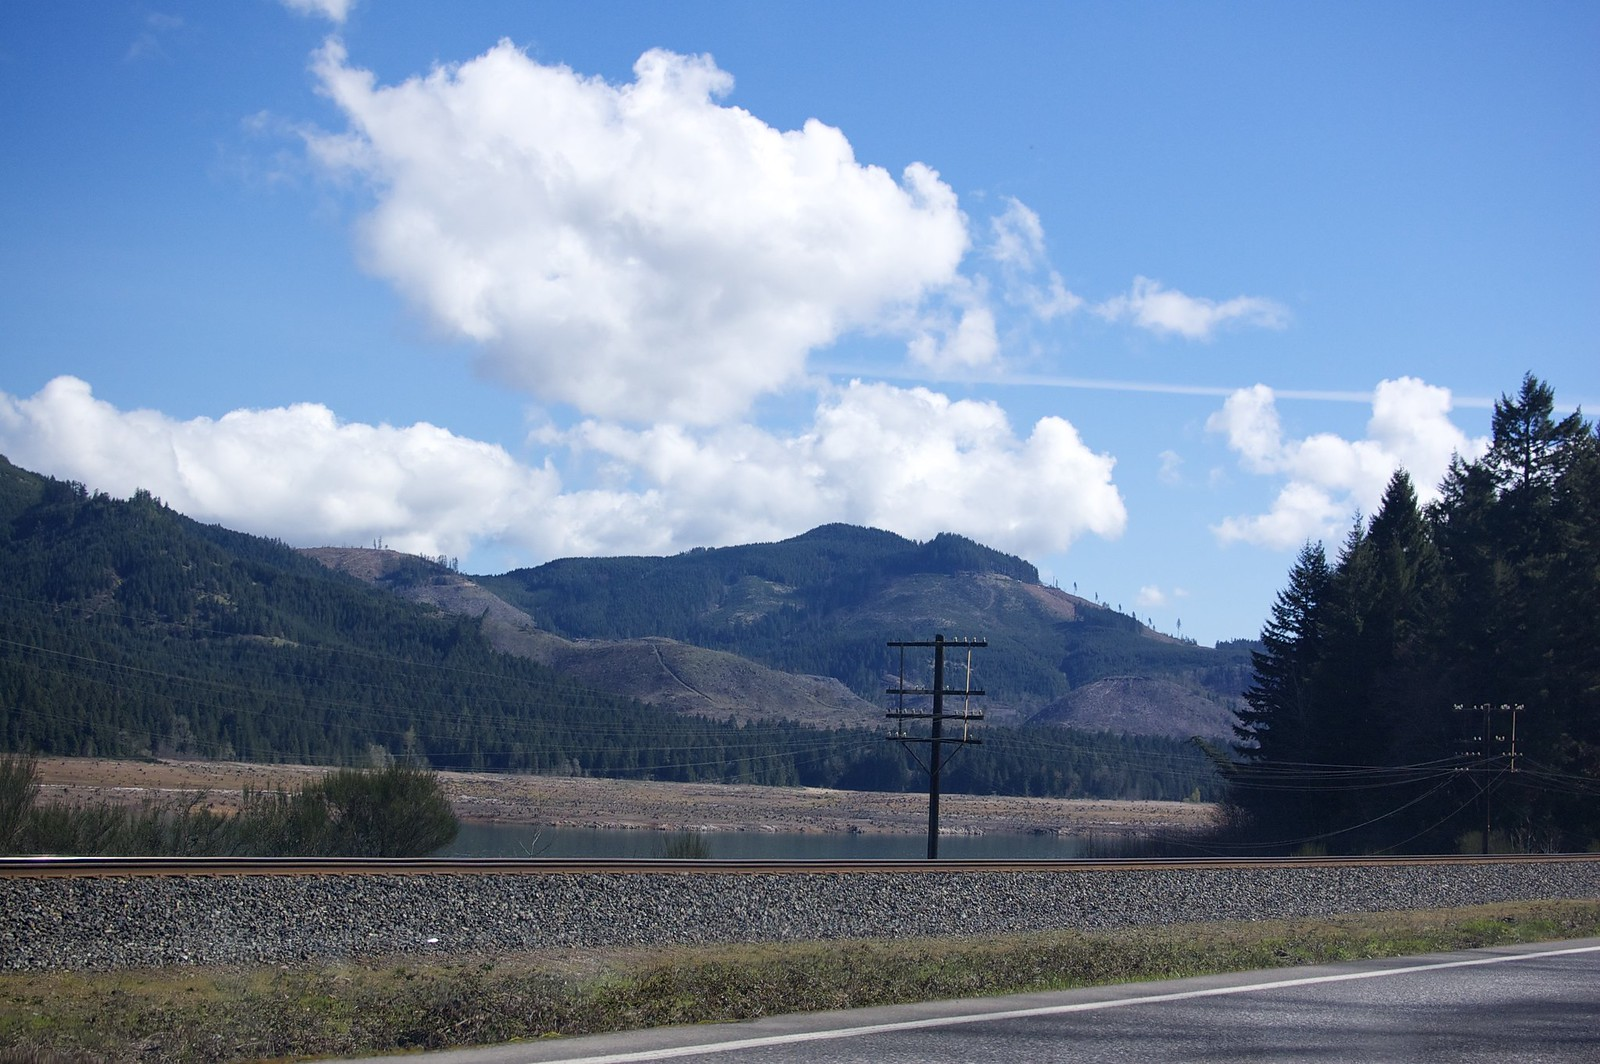 Highway 58 - Railroads and Rivers